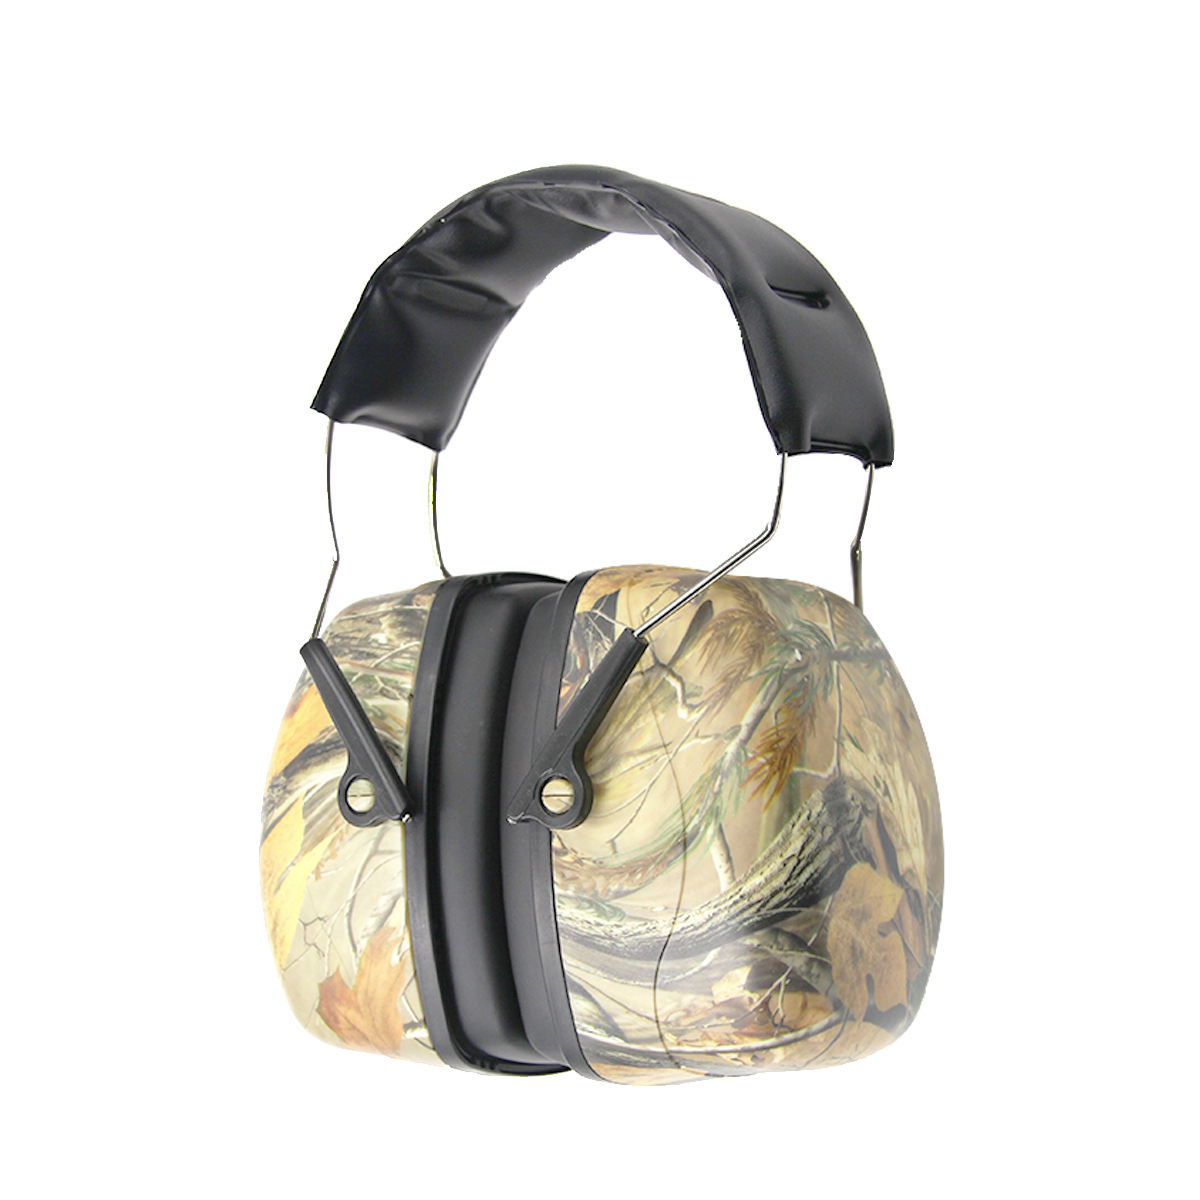 High NRR 35db Ear Protection Noise Reduction Safety Ear Muffs